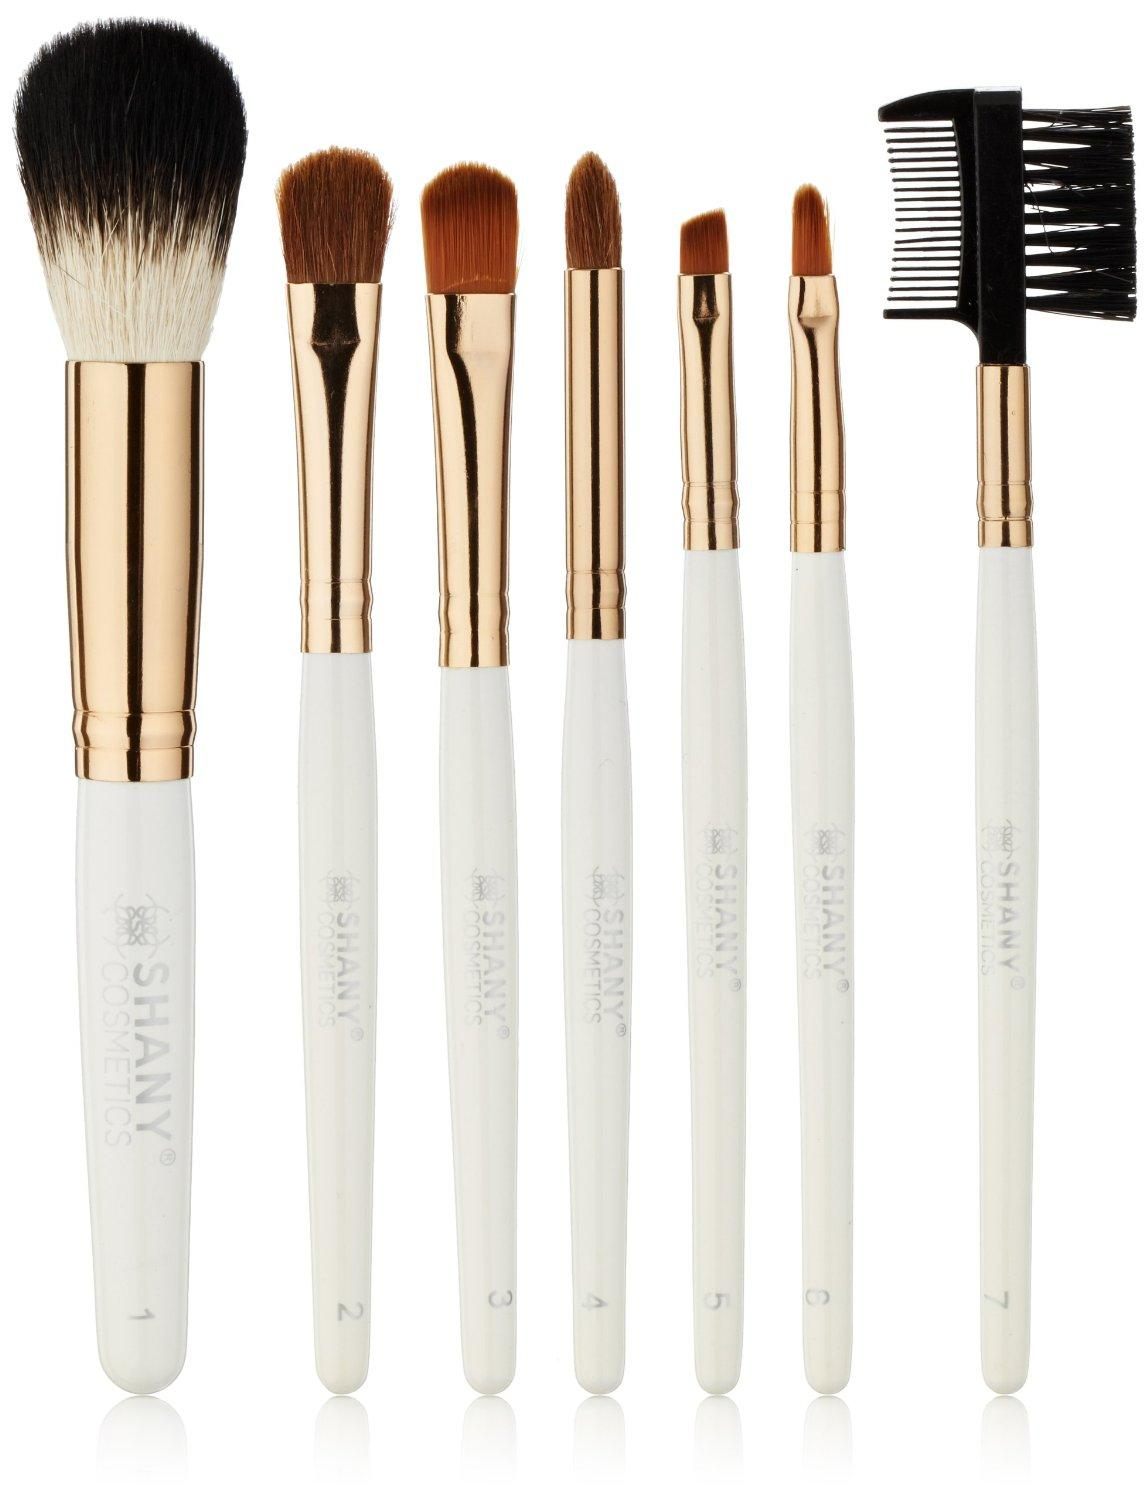 Makeup Brushes Sponge Collection: Real Techniques Brushes Sigma Brushes Mascara Nyx Beauty